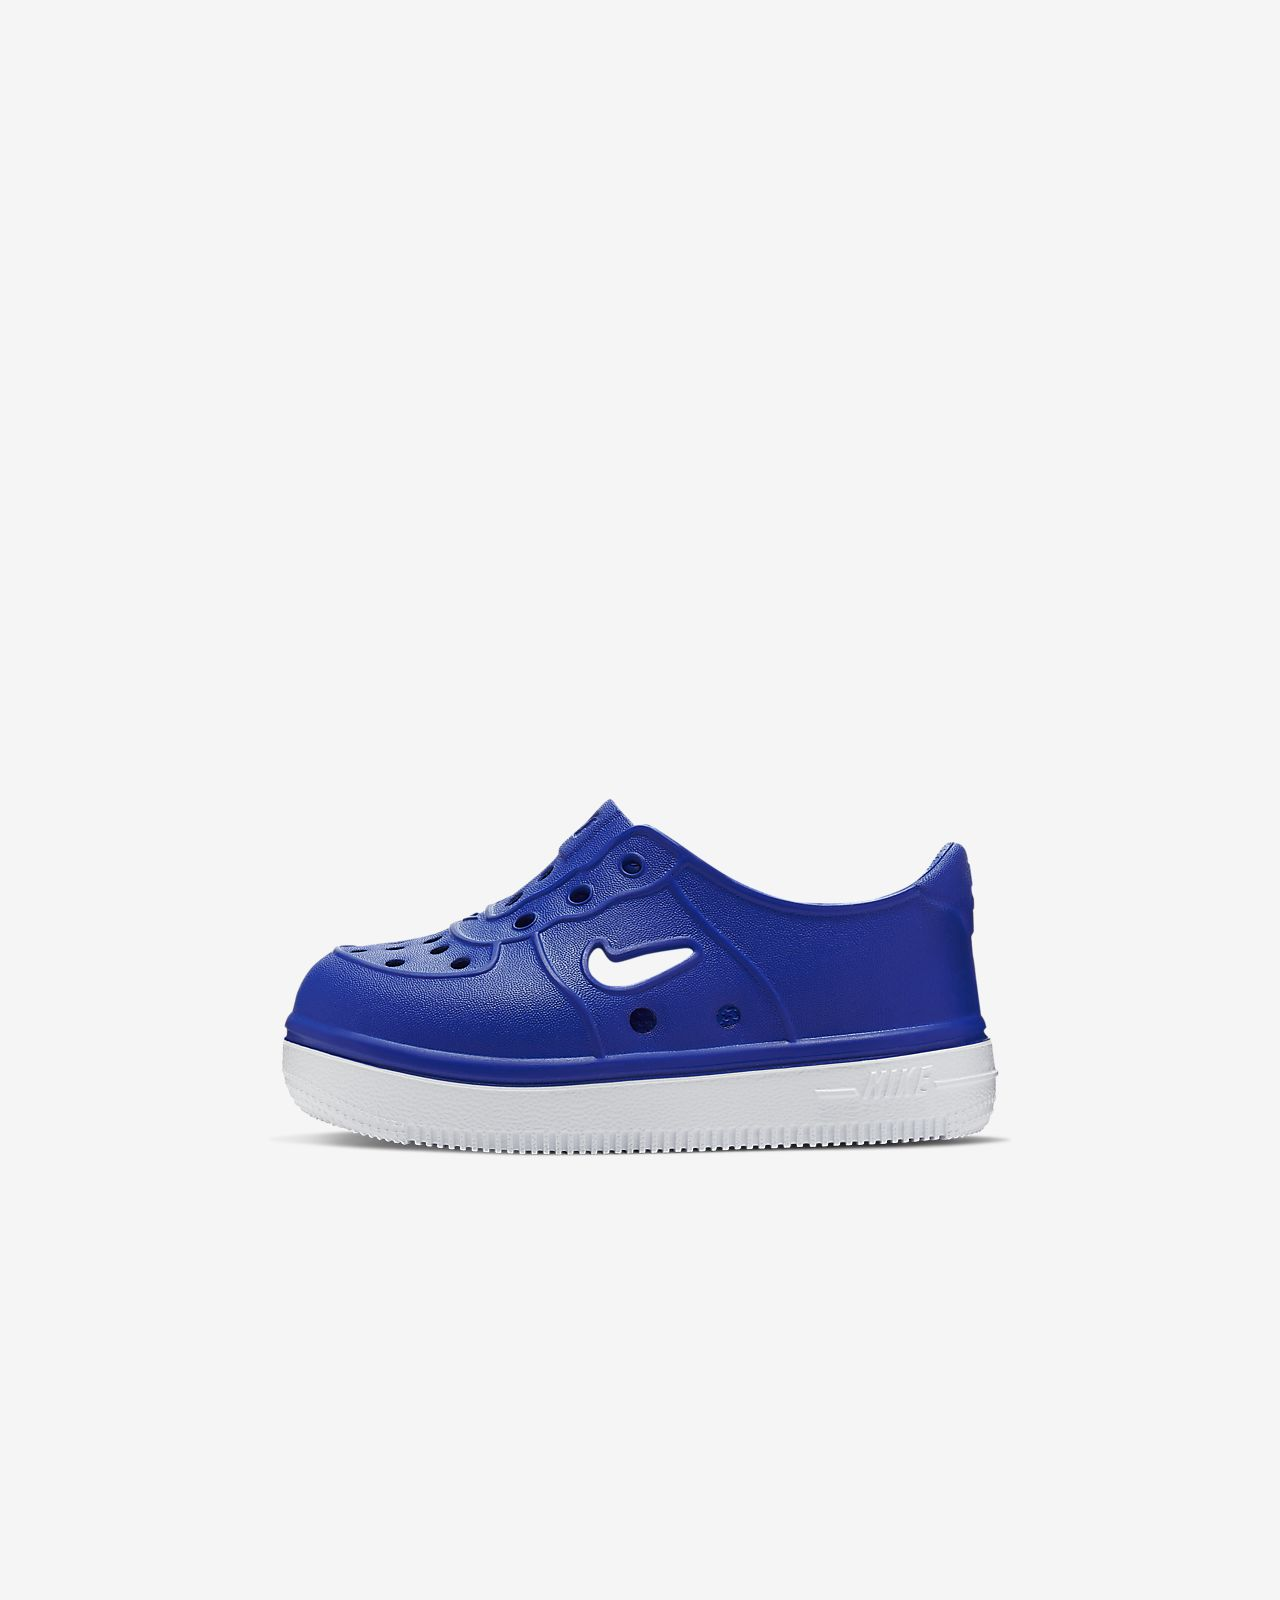 Nike Foam Force 1 Zapatillas - Bebé e infantil